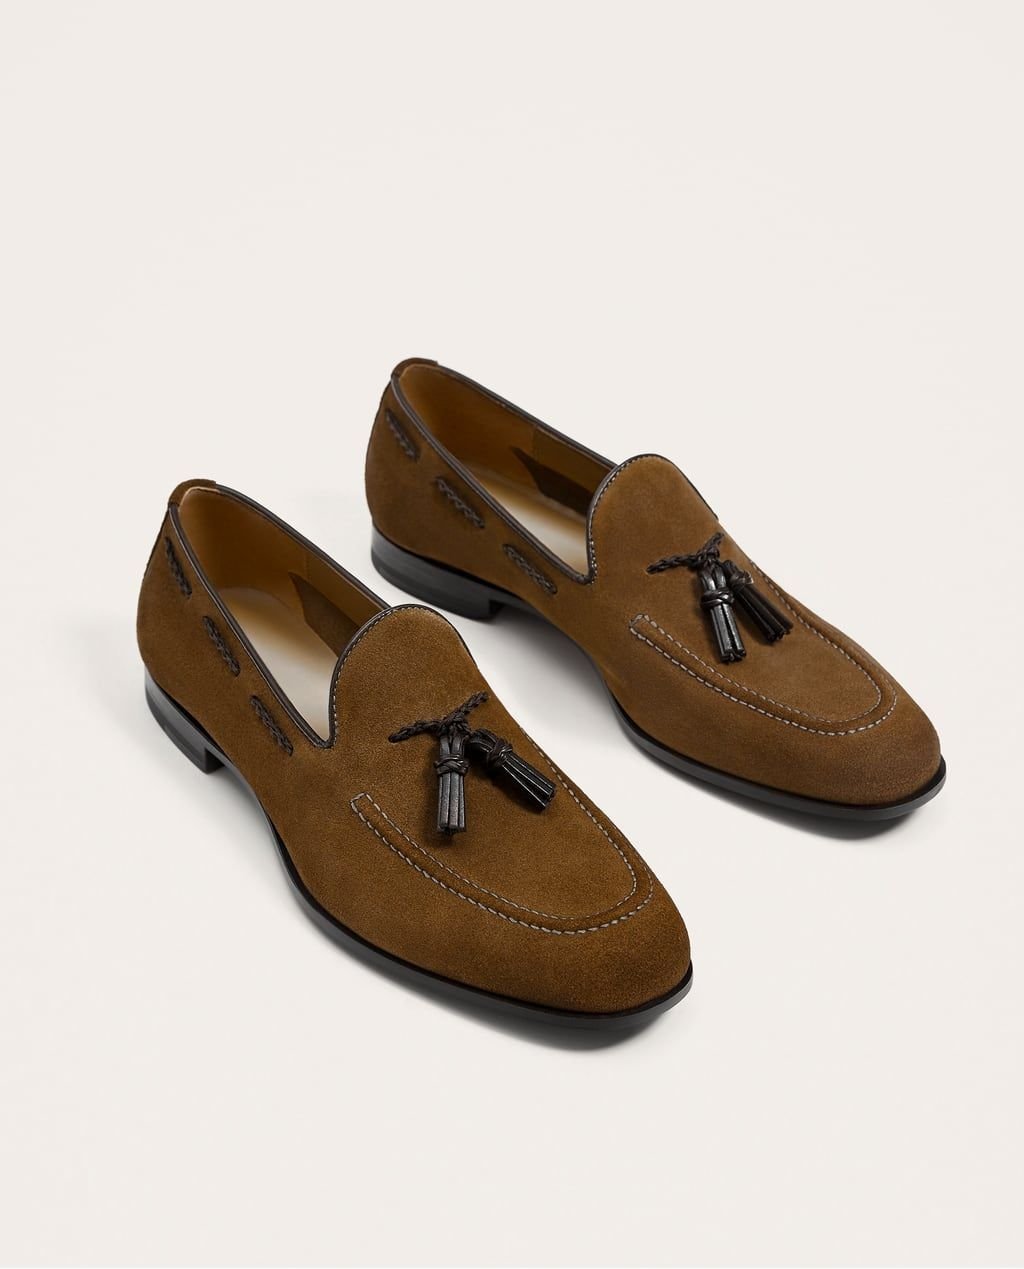 73d918c2a MOCASÍN PIEL | Mens' Shoe Trends | Leather loafers, Leather loafer ...